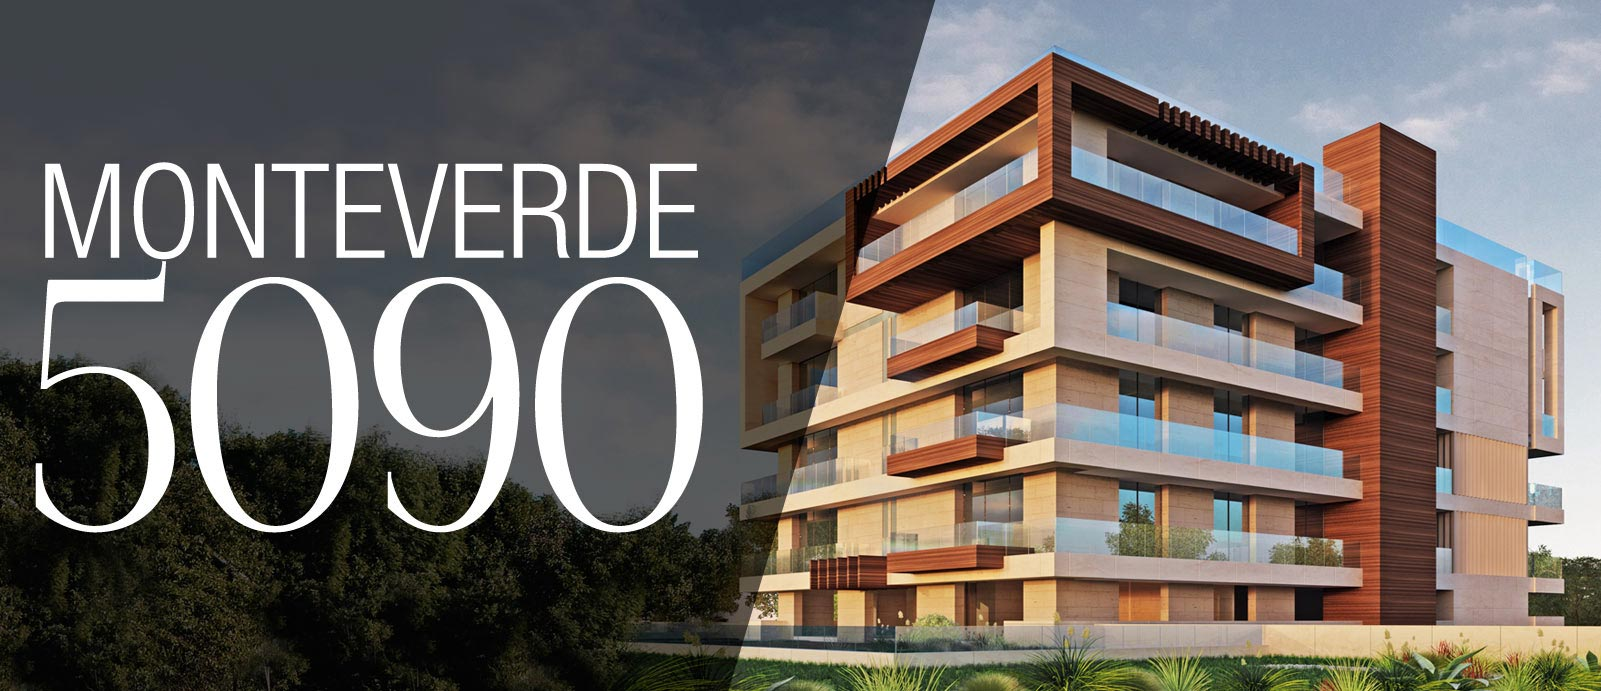 Apartments for sale in Monteverde MCP 5090